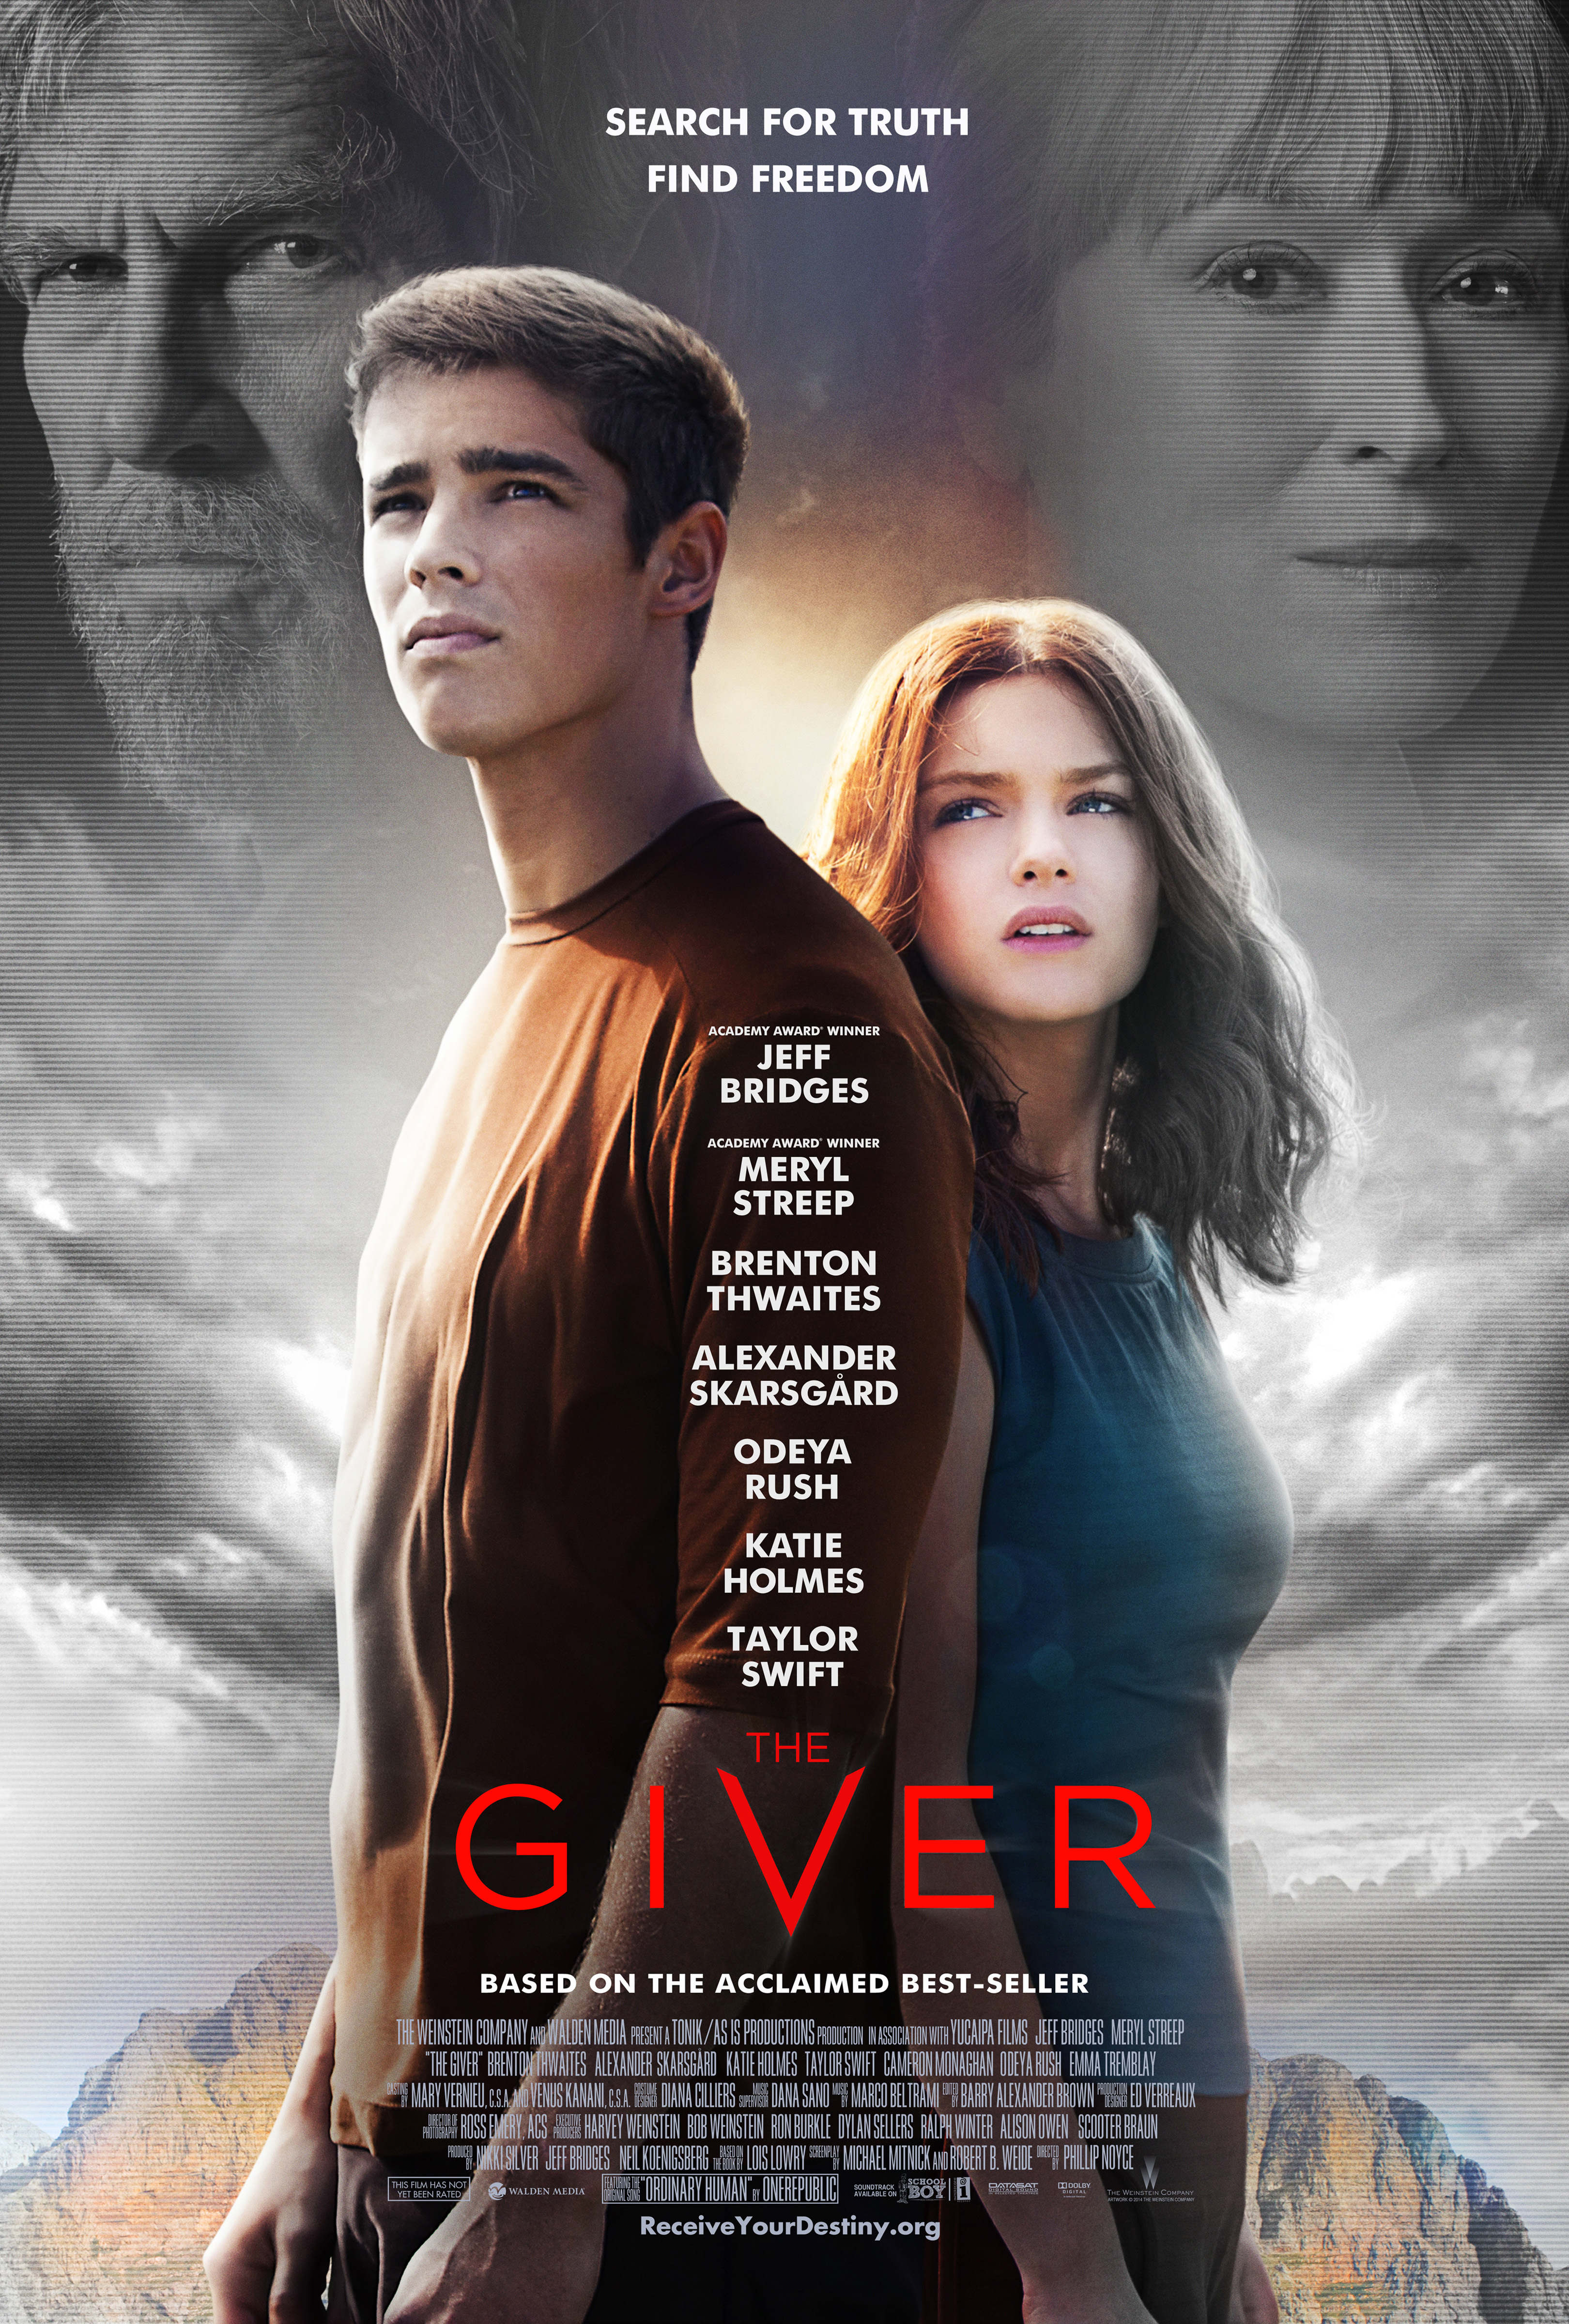 The Giver Exclusive World Premiere Red Carpet Event post thumbnail